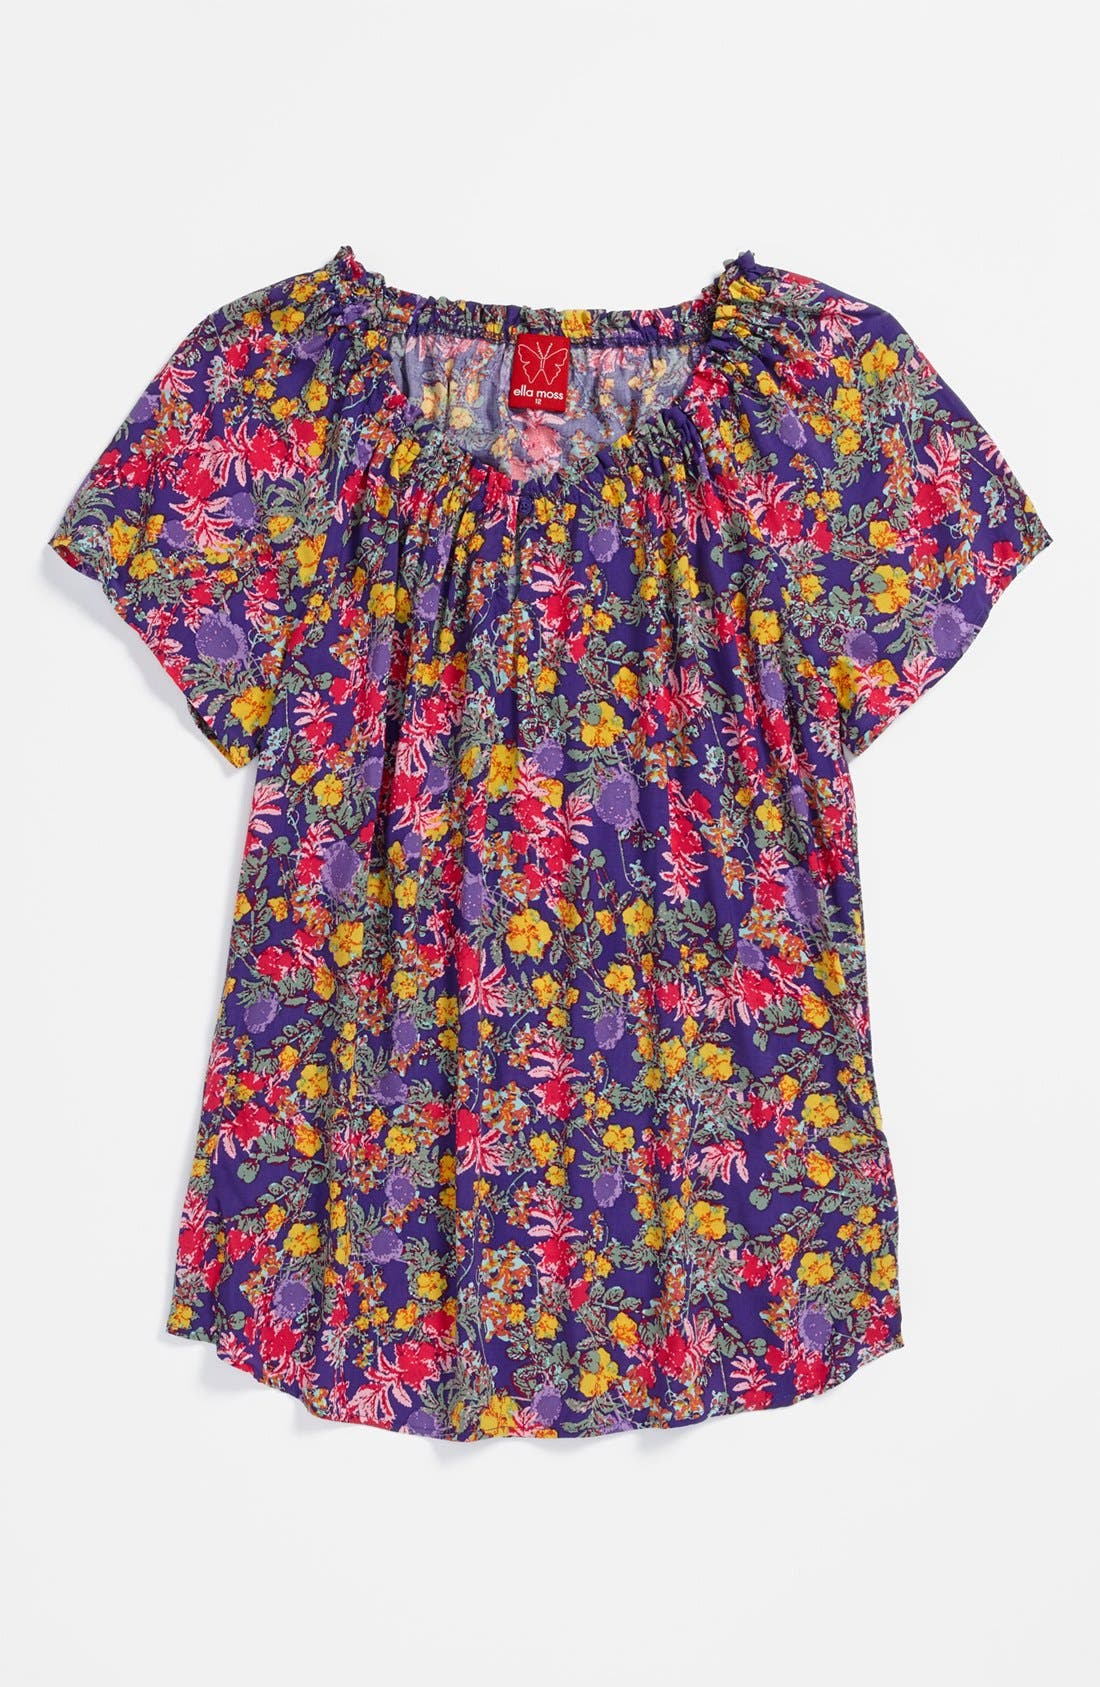 Main Image - Ella Moss 'Vineyard' Floral Top (Big Girls)